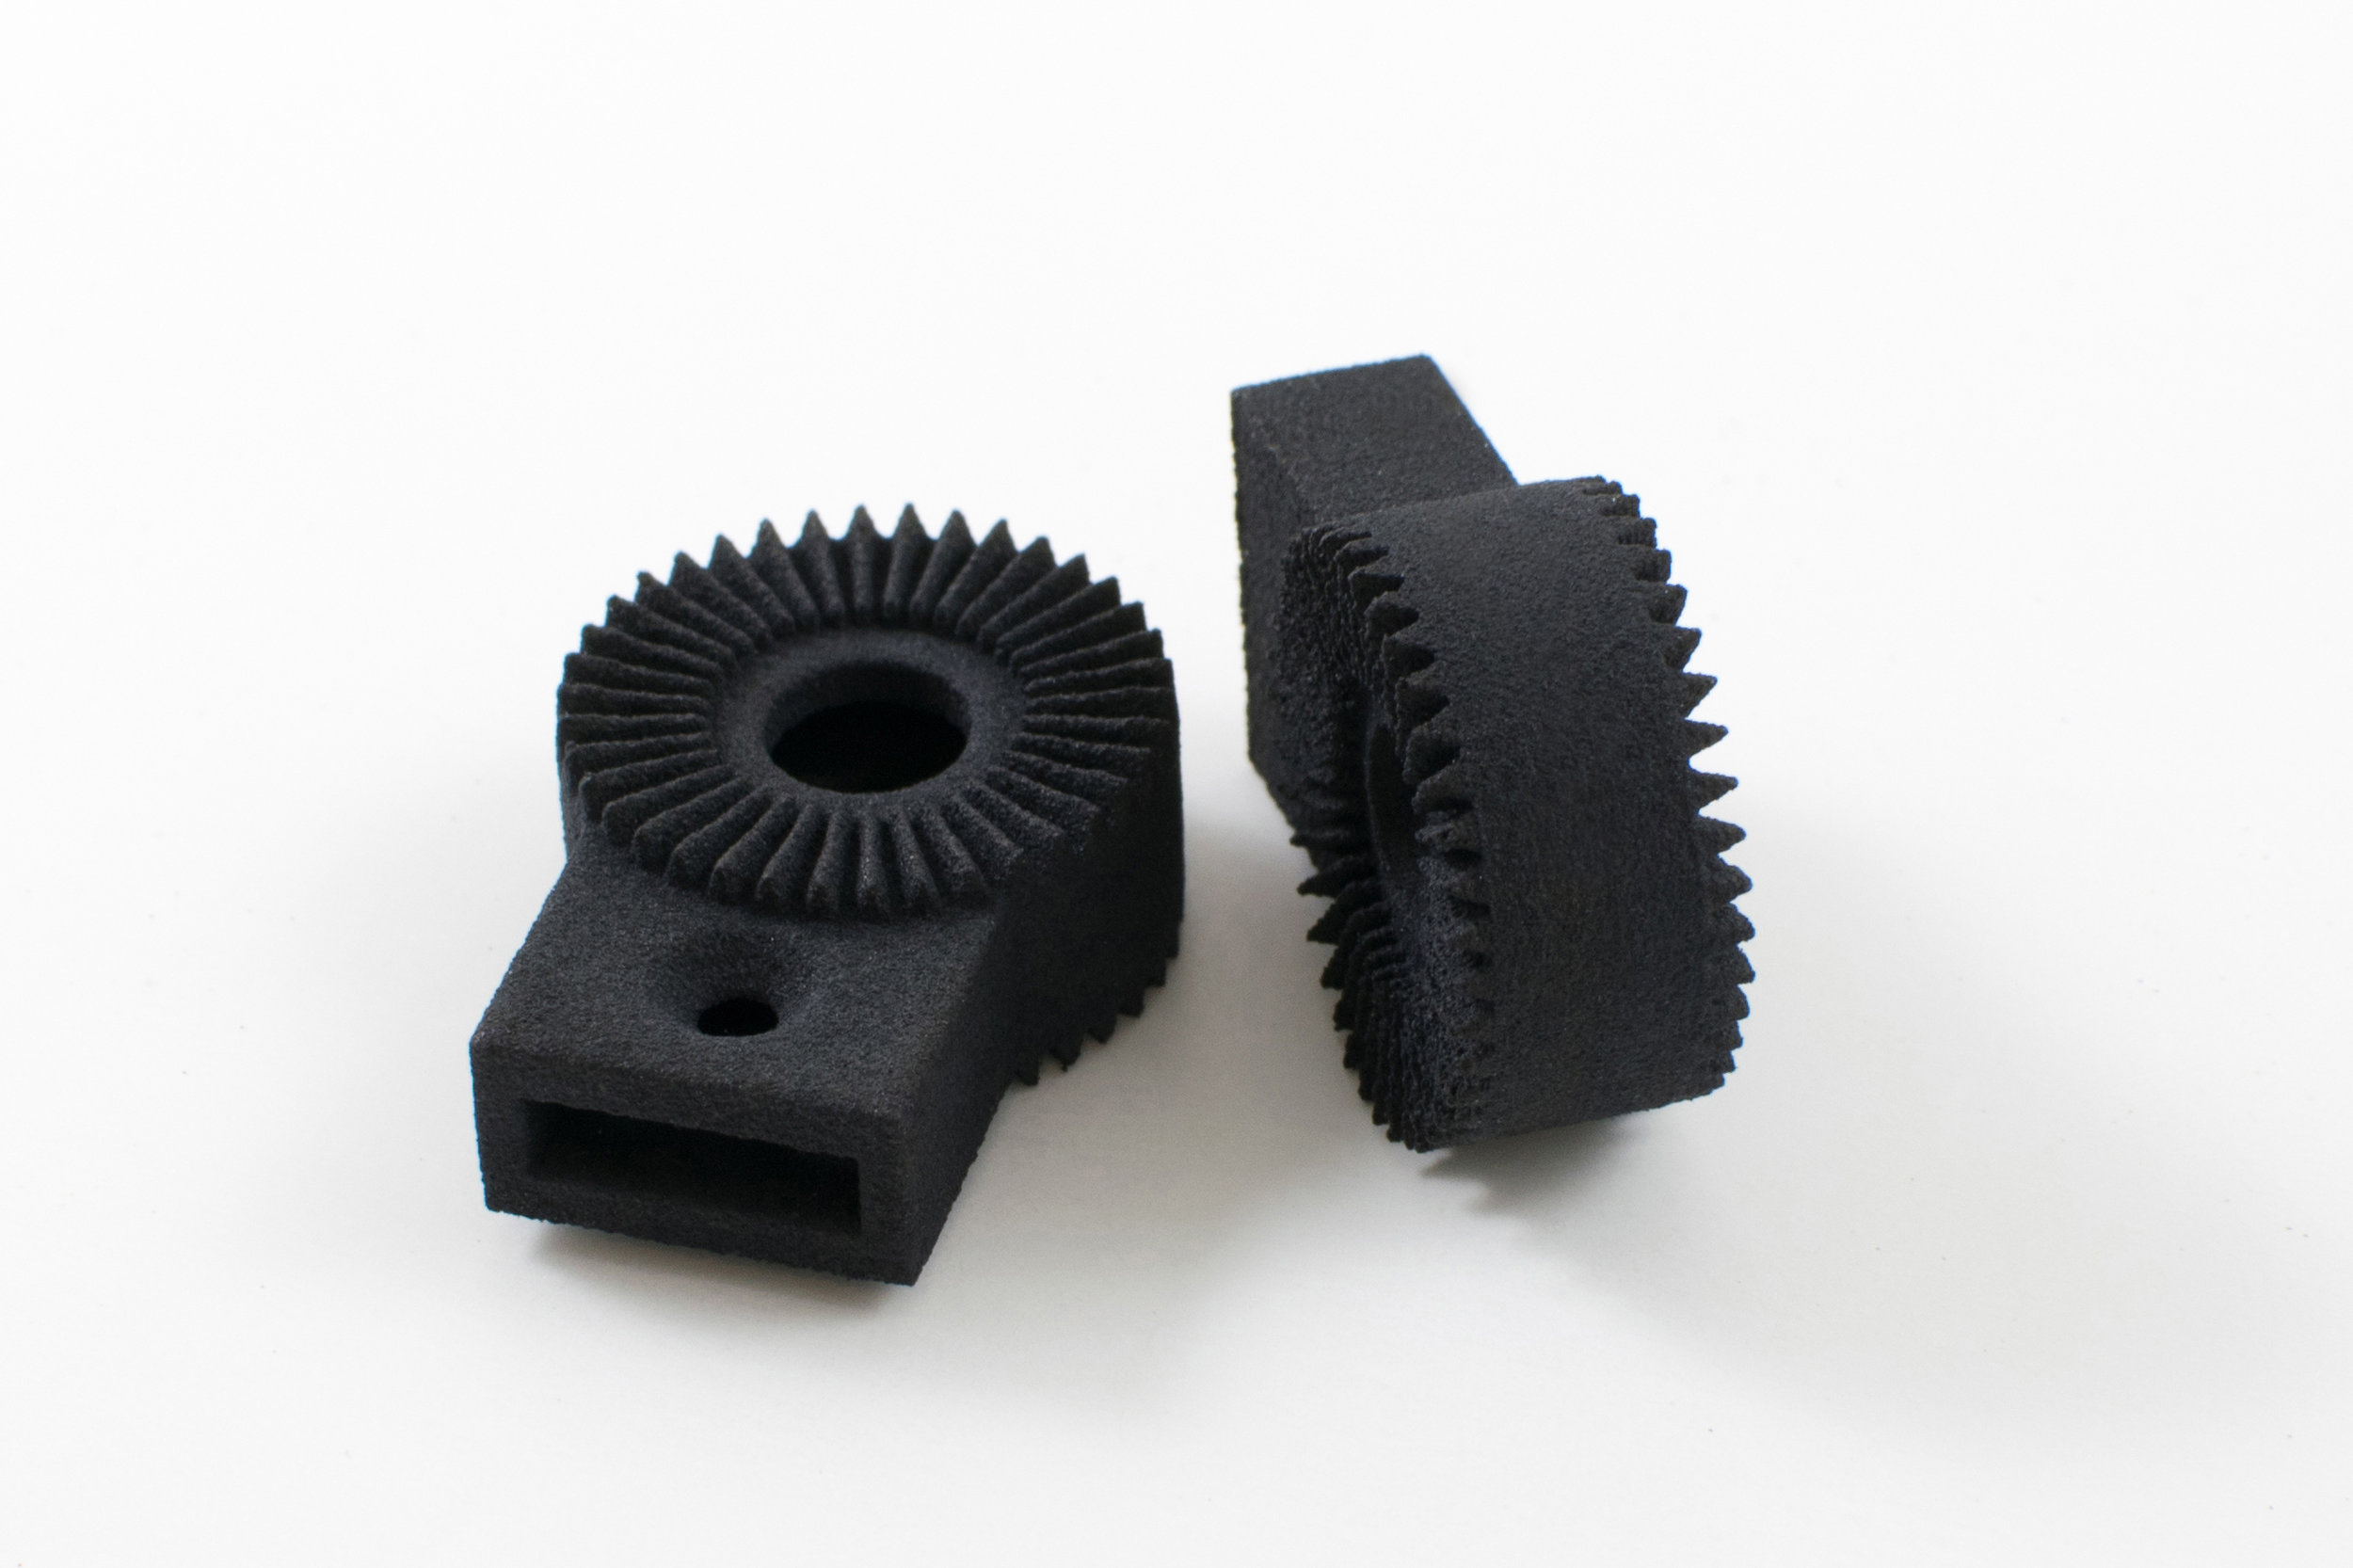 """Low-Cost Solutions to Traditional Manufacturing - Every player in manufacturing has winced at the high-priced """"setup costs"""" and vast """"minimum order quantites"""" associated with bringing a product to life. Additive manufacturing needs no tooling, requires no setup, and demands no quantity. Auxetic has the know-how to keep your costs low and your designs smart by providing the right manufacturing consultation (DFAM) for every request."""